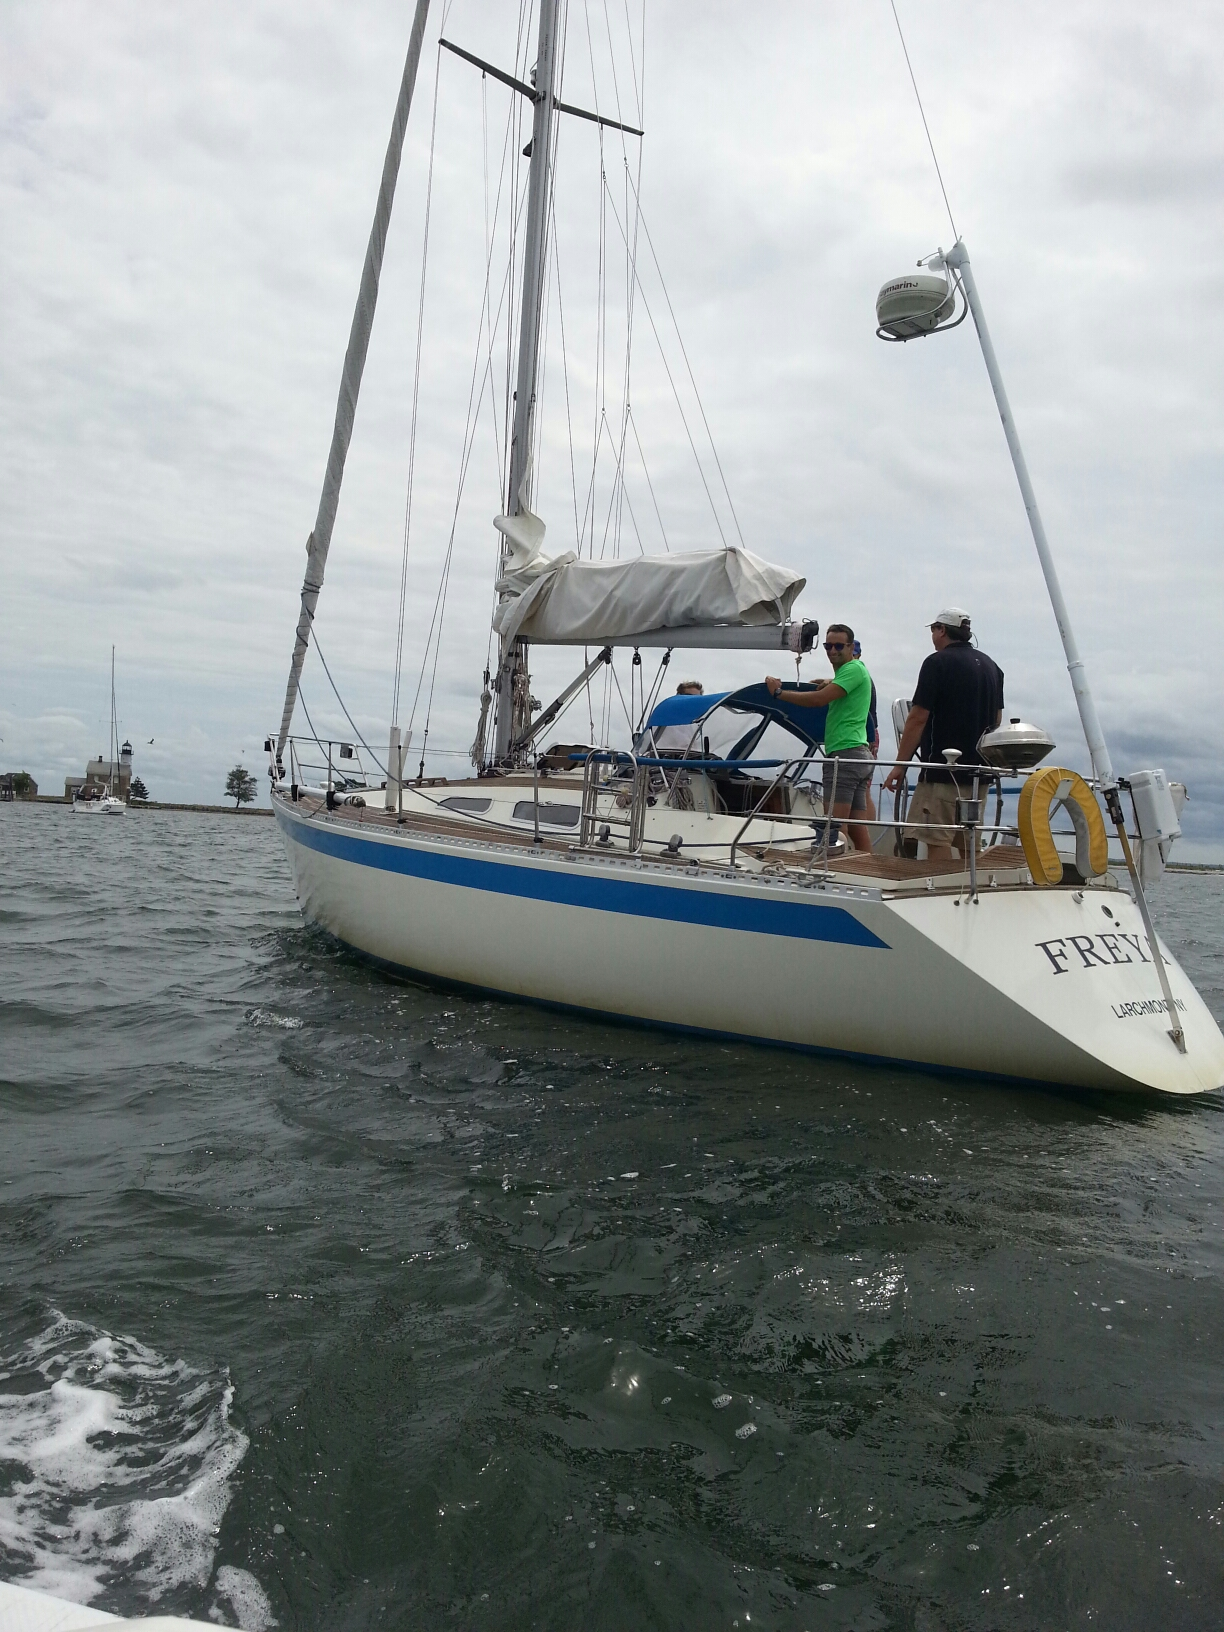 Make Your Next Meeting Fun Exhilarating And Memorable Incorporate Sailing Into Sales Awards Dinner Or Any Company Gathering